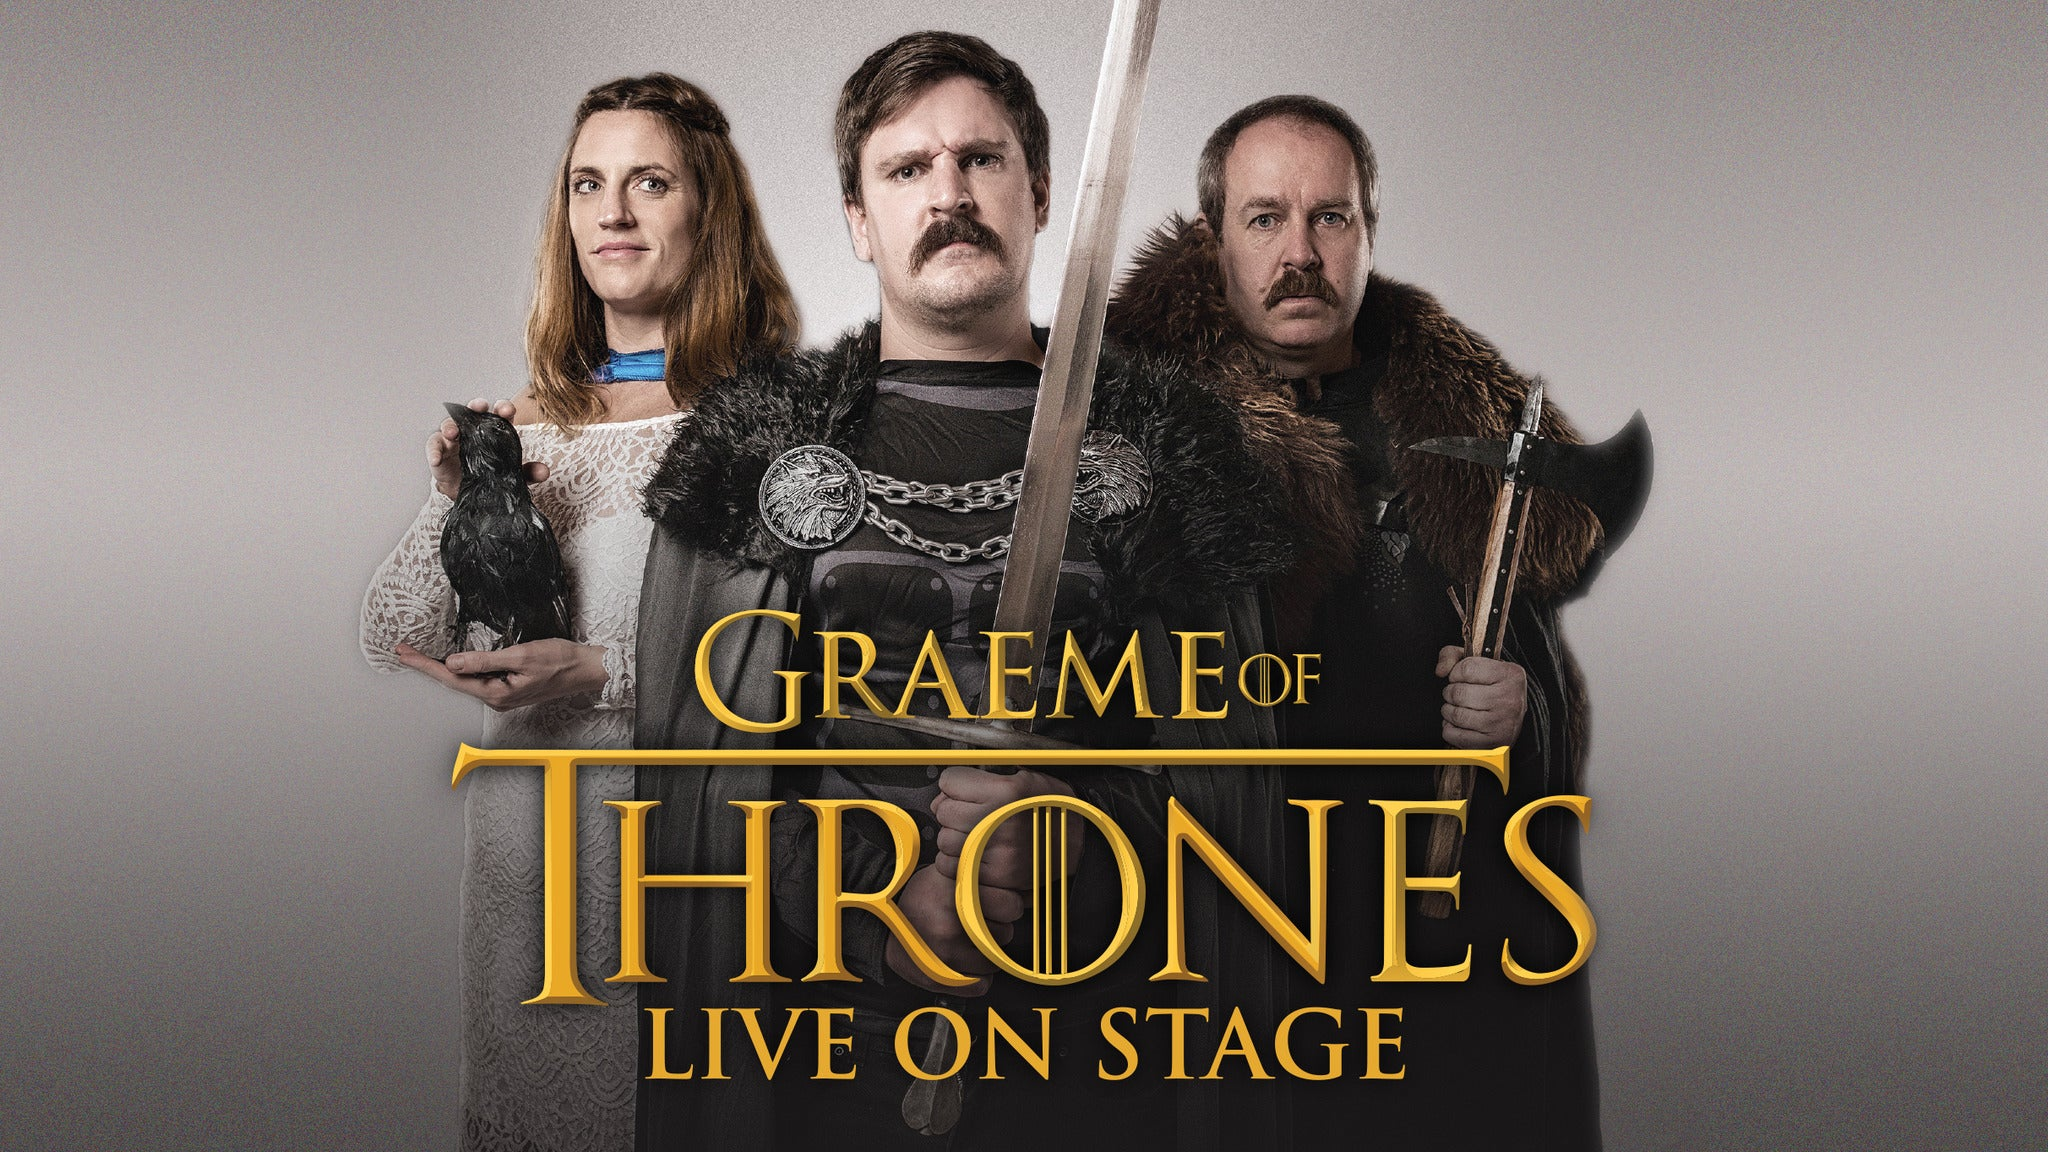 Graeme of Thrones at Broadway Playhouse at Water Tower Place - Chicago, IL 60611